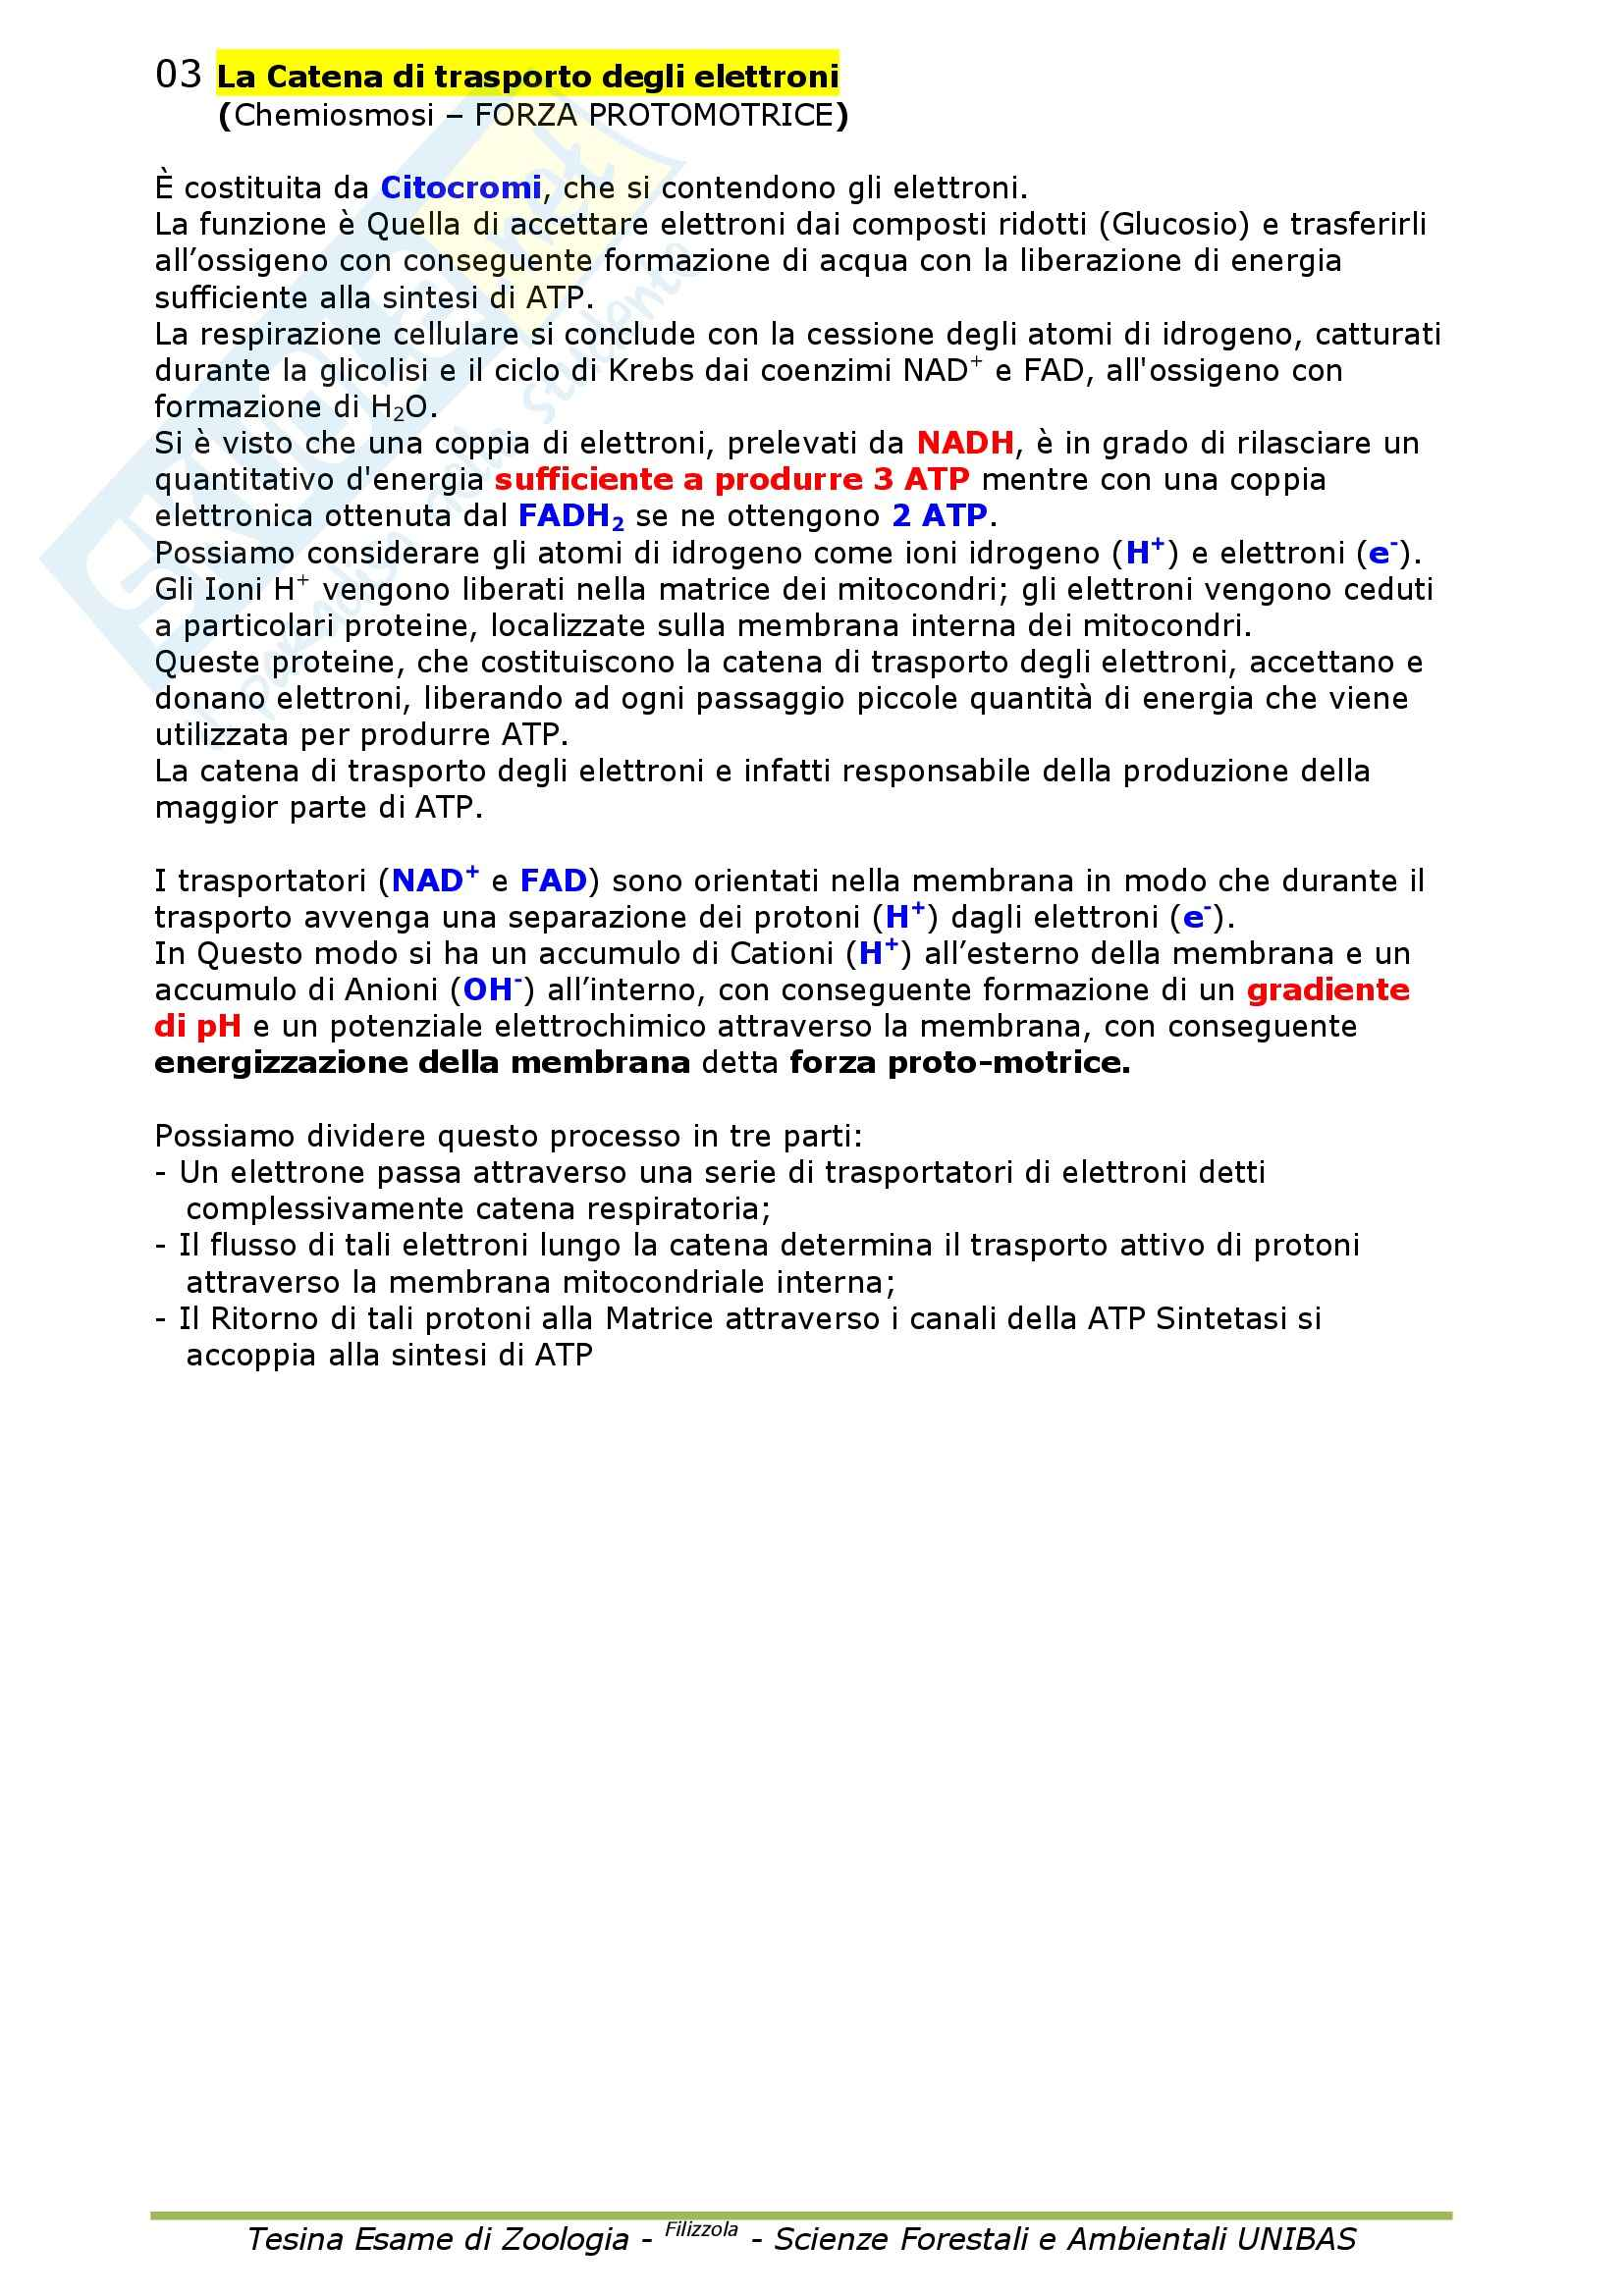 Zoologia Generale Pag. 21